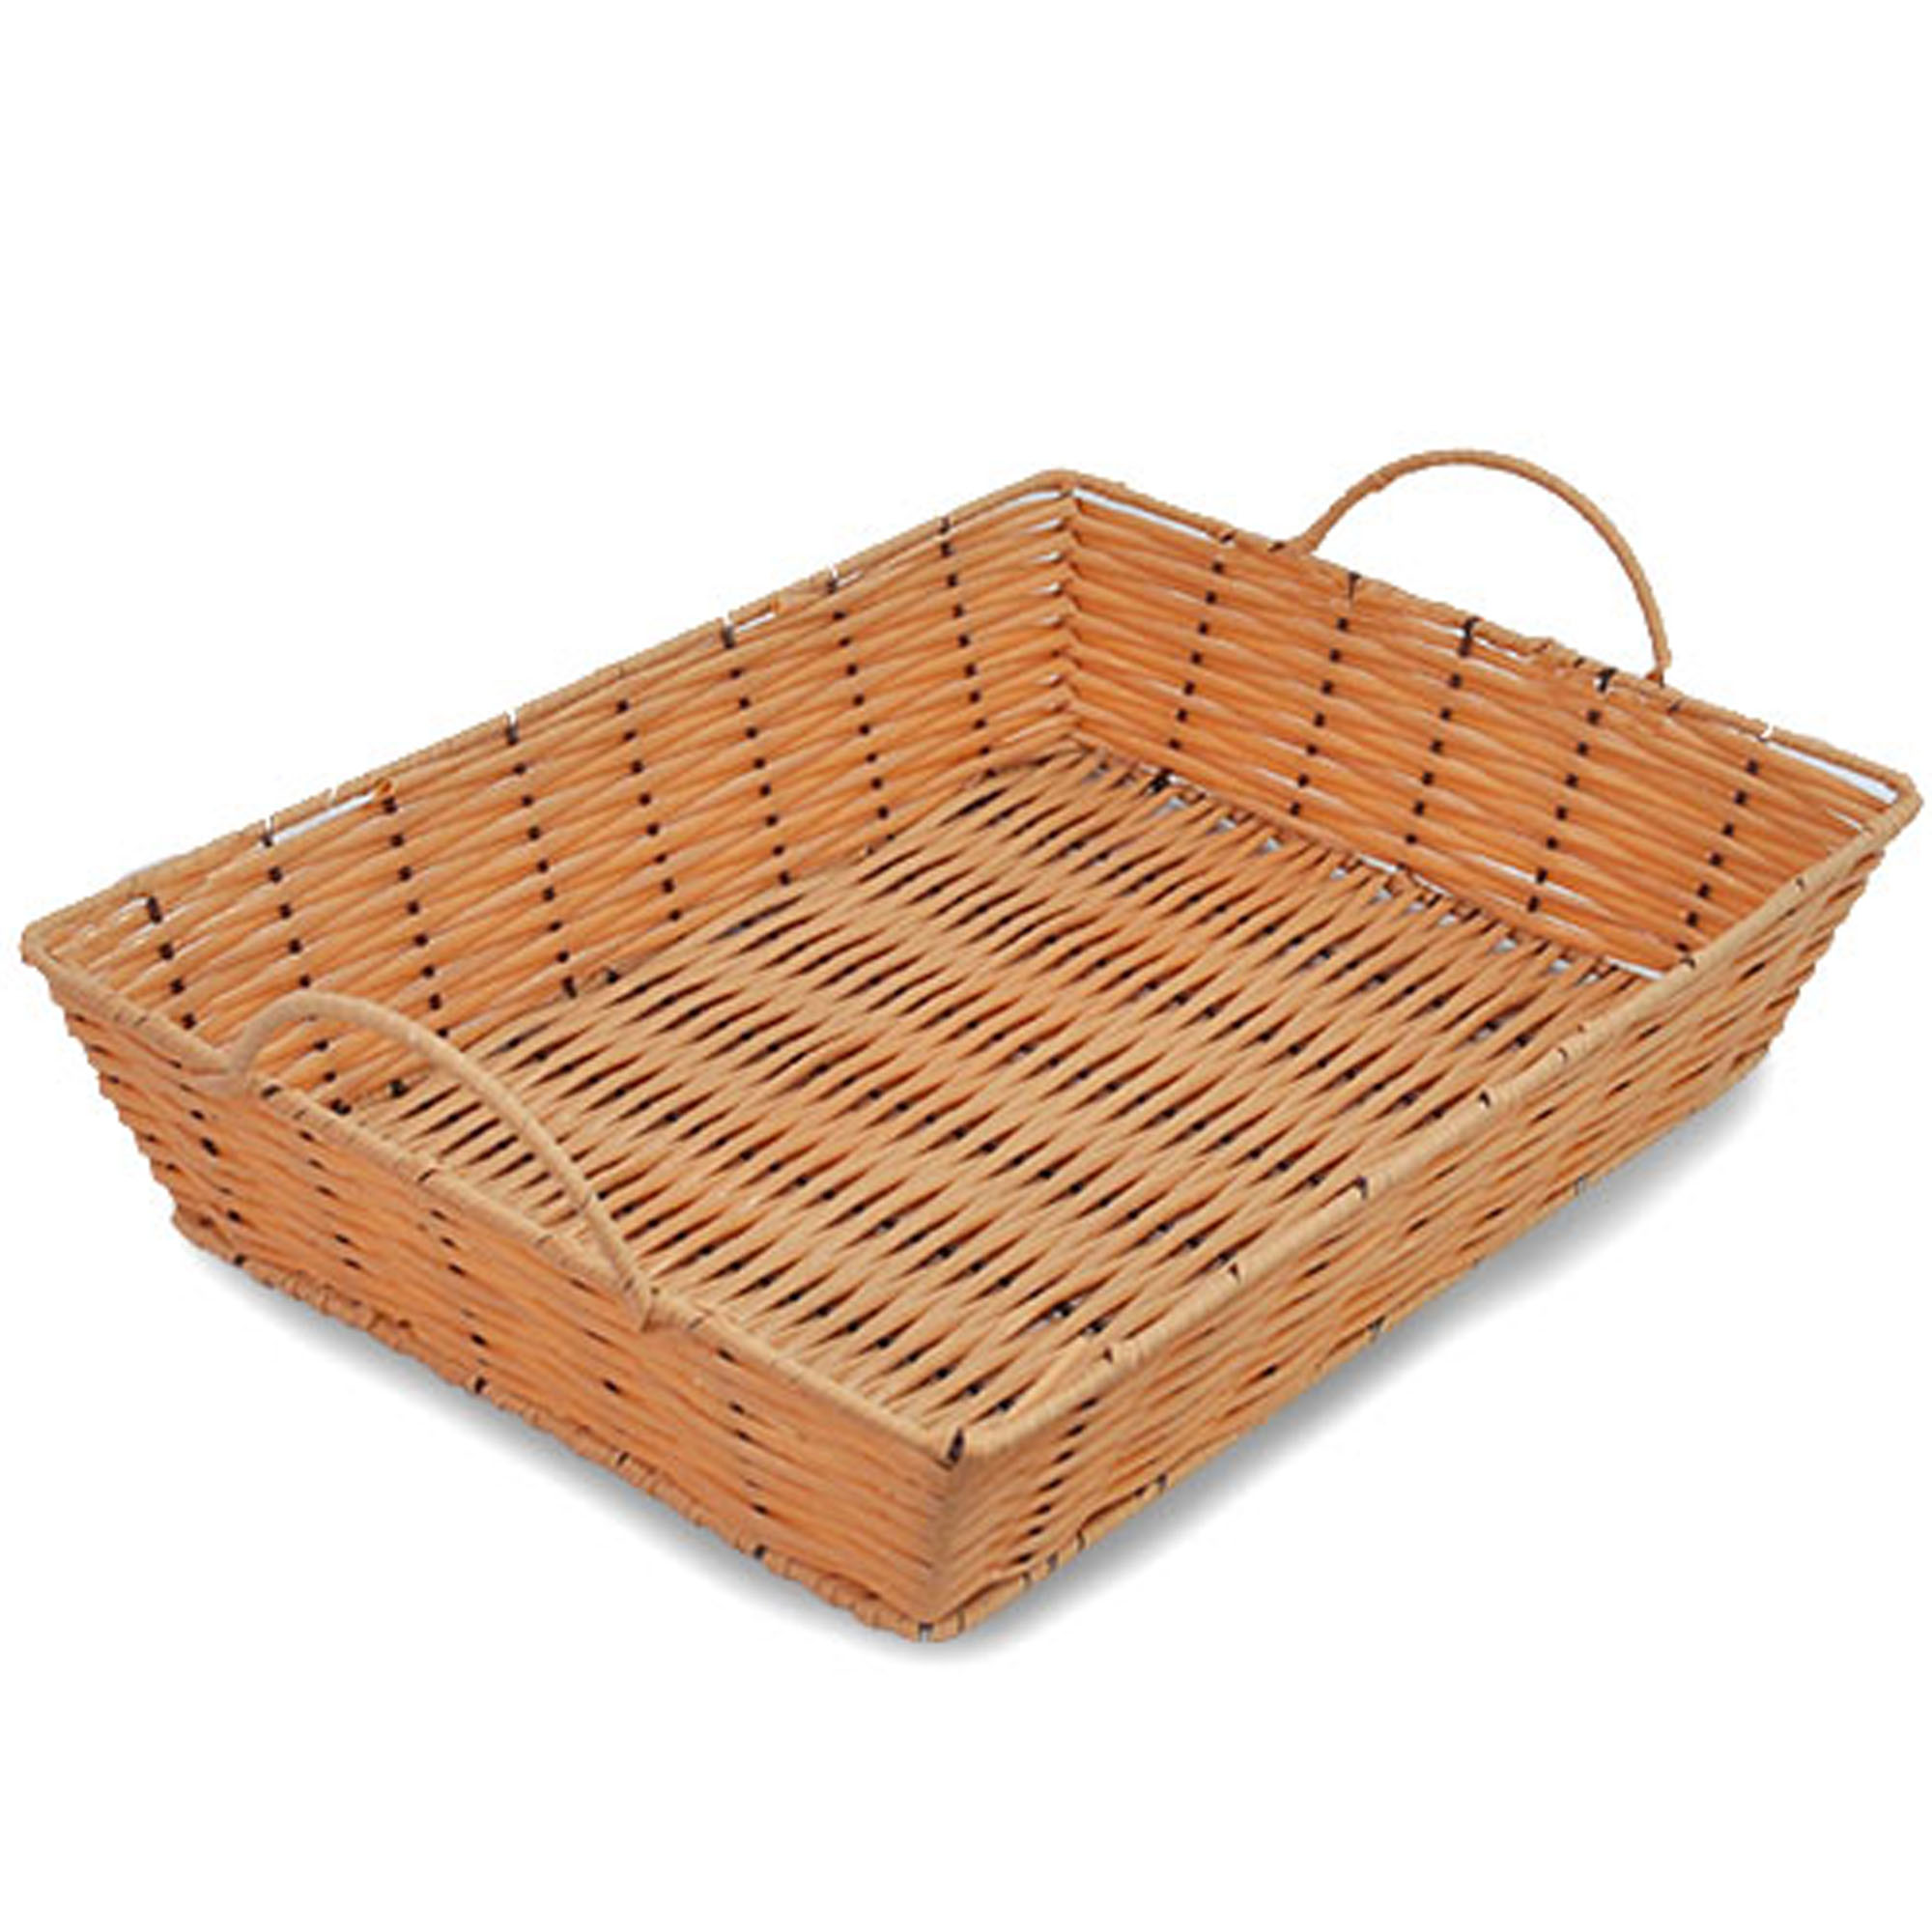 Rectangular Synthetic Wicker Tray with Handles - Small 13in